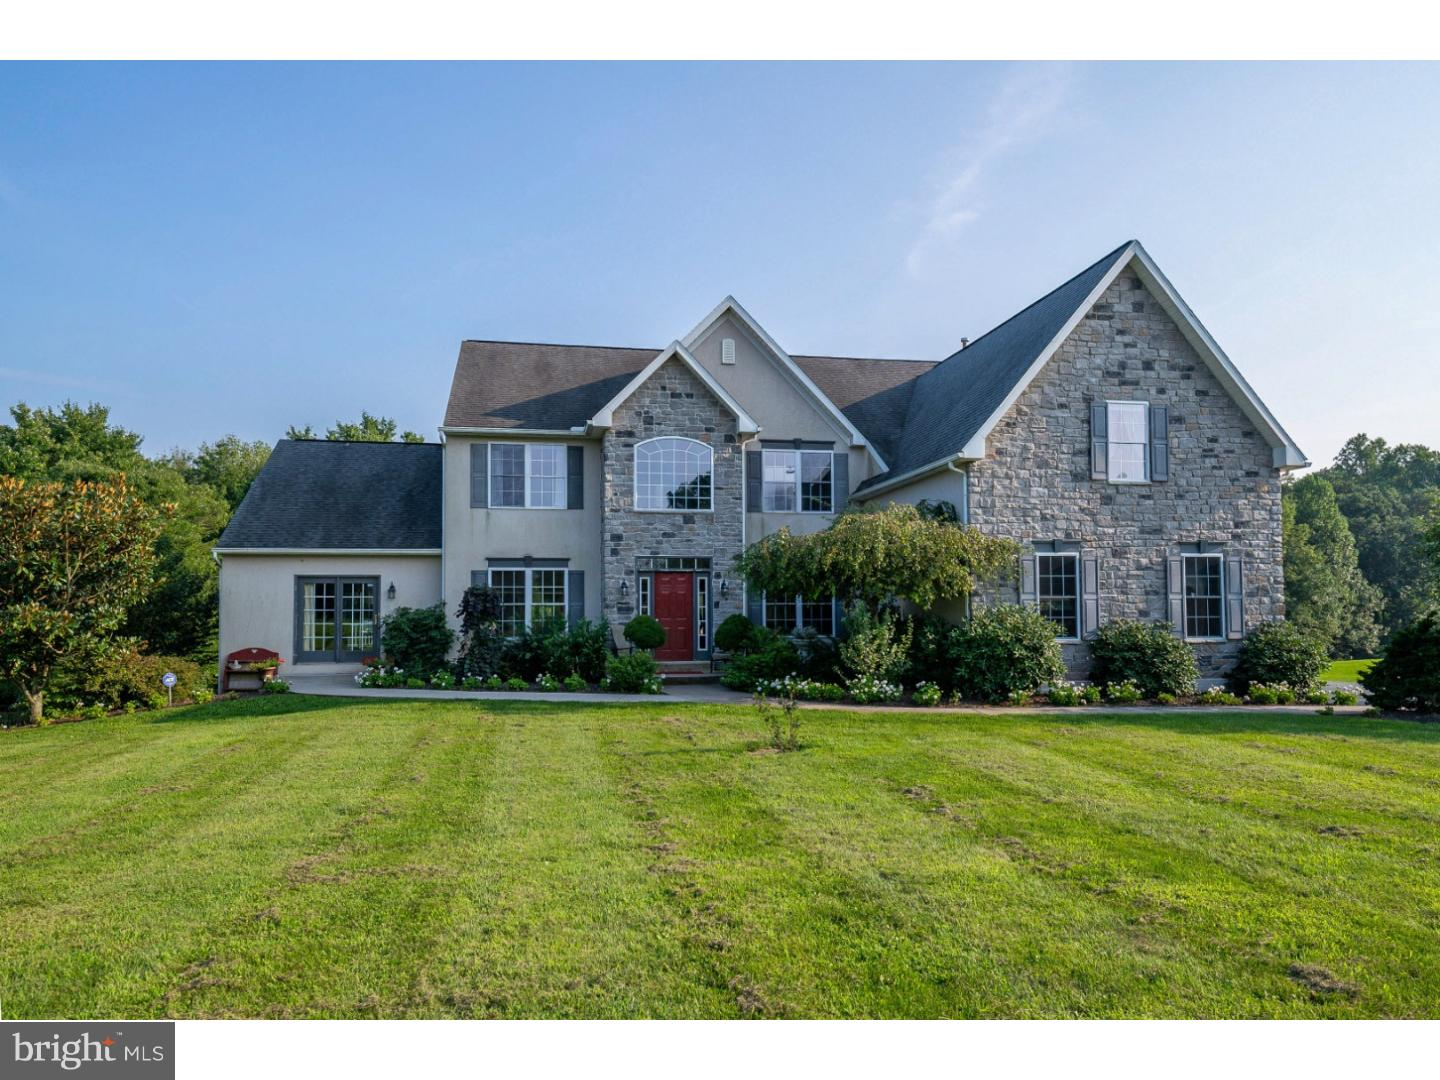 116 Curley Court Mohnton, PA 19540